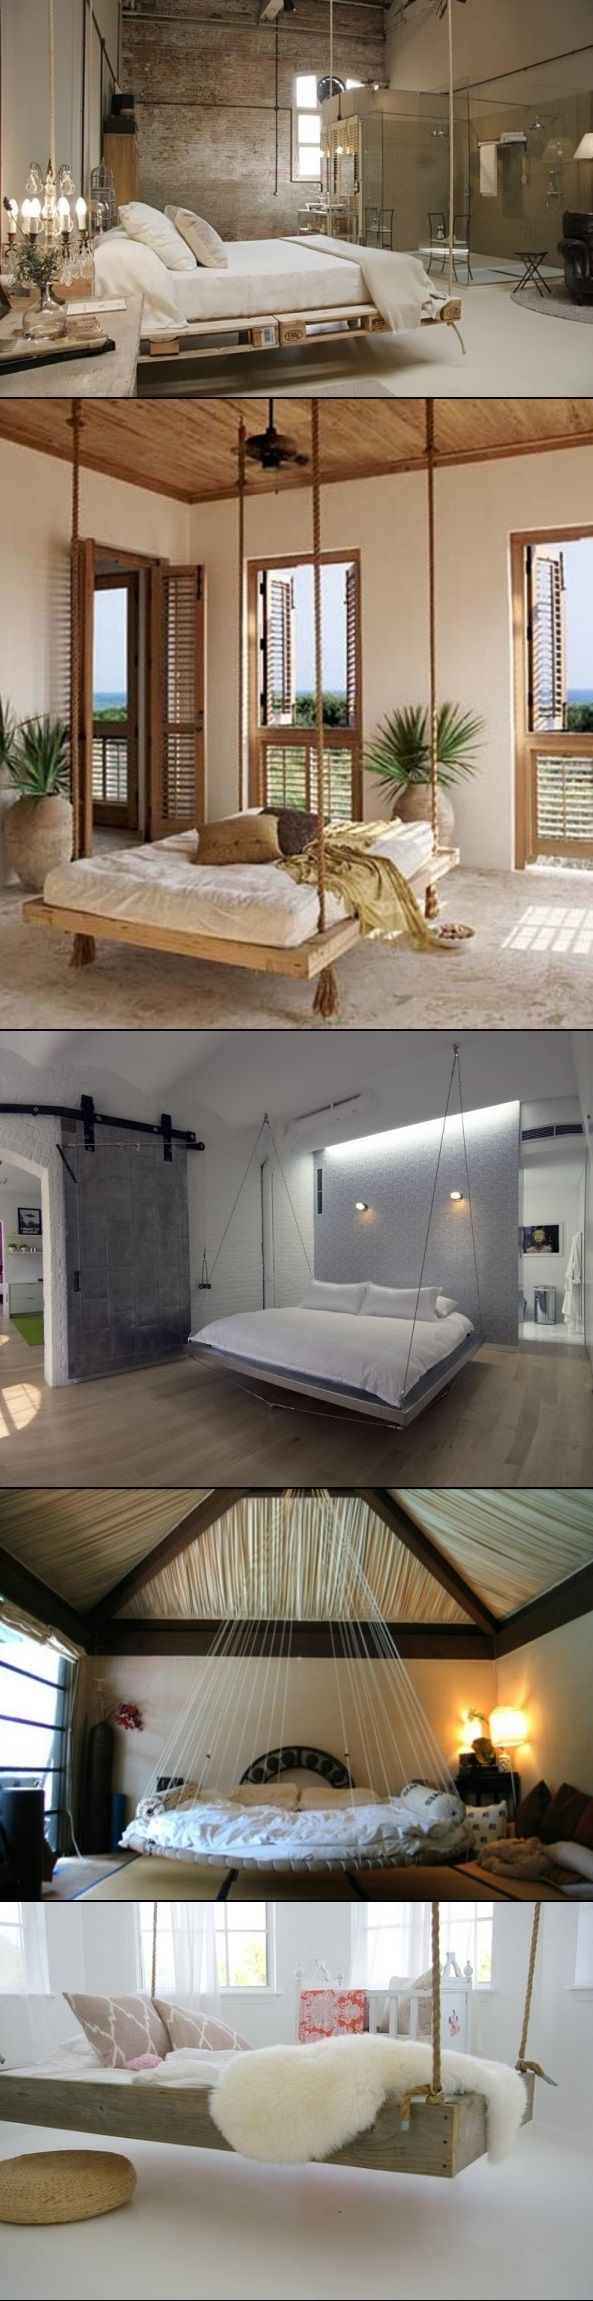 Creatively Recycling Ideas-Top 20 Pallet Beds -homesthetics (18)